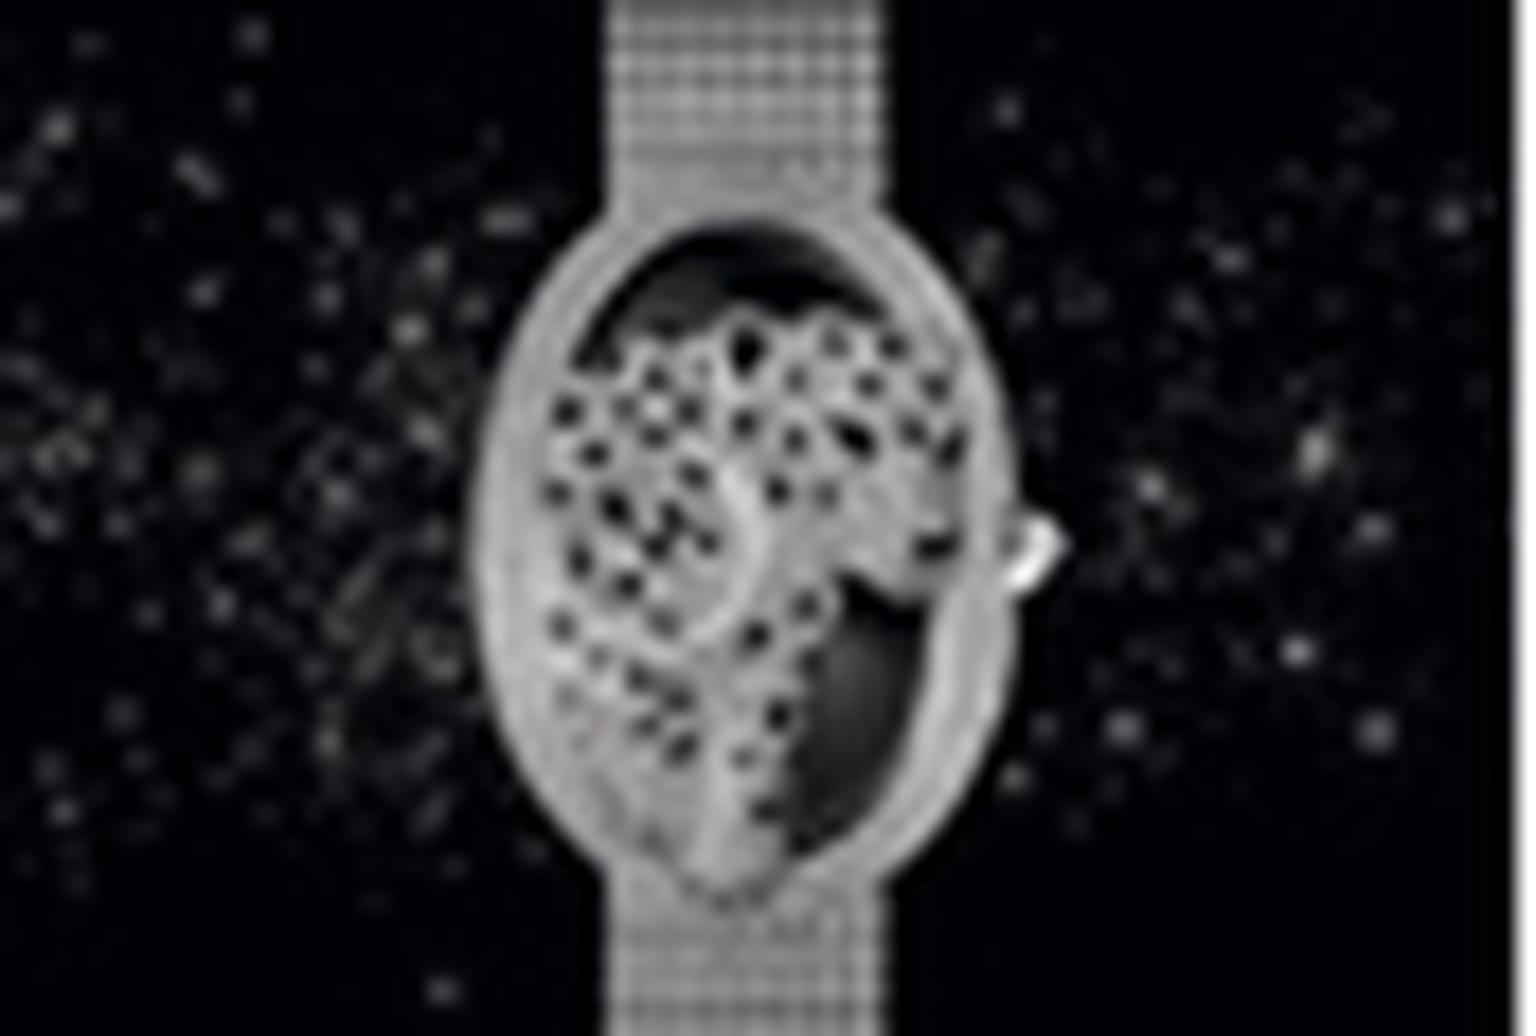 Diamond jewellery watches